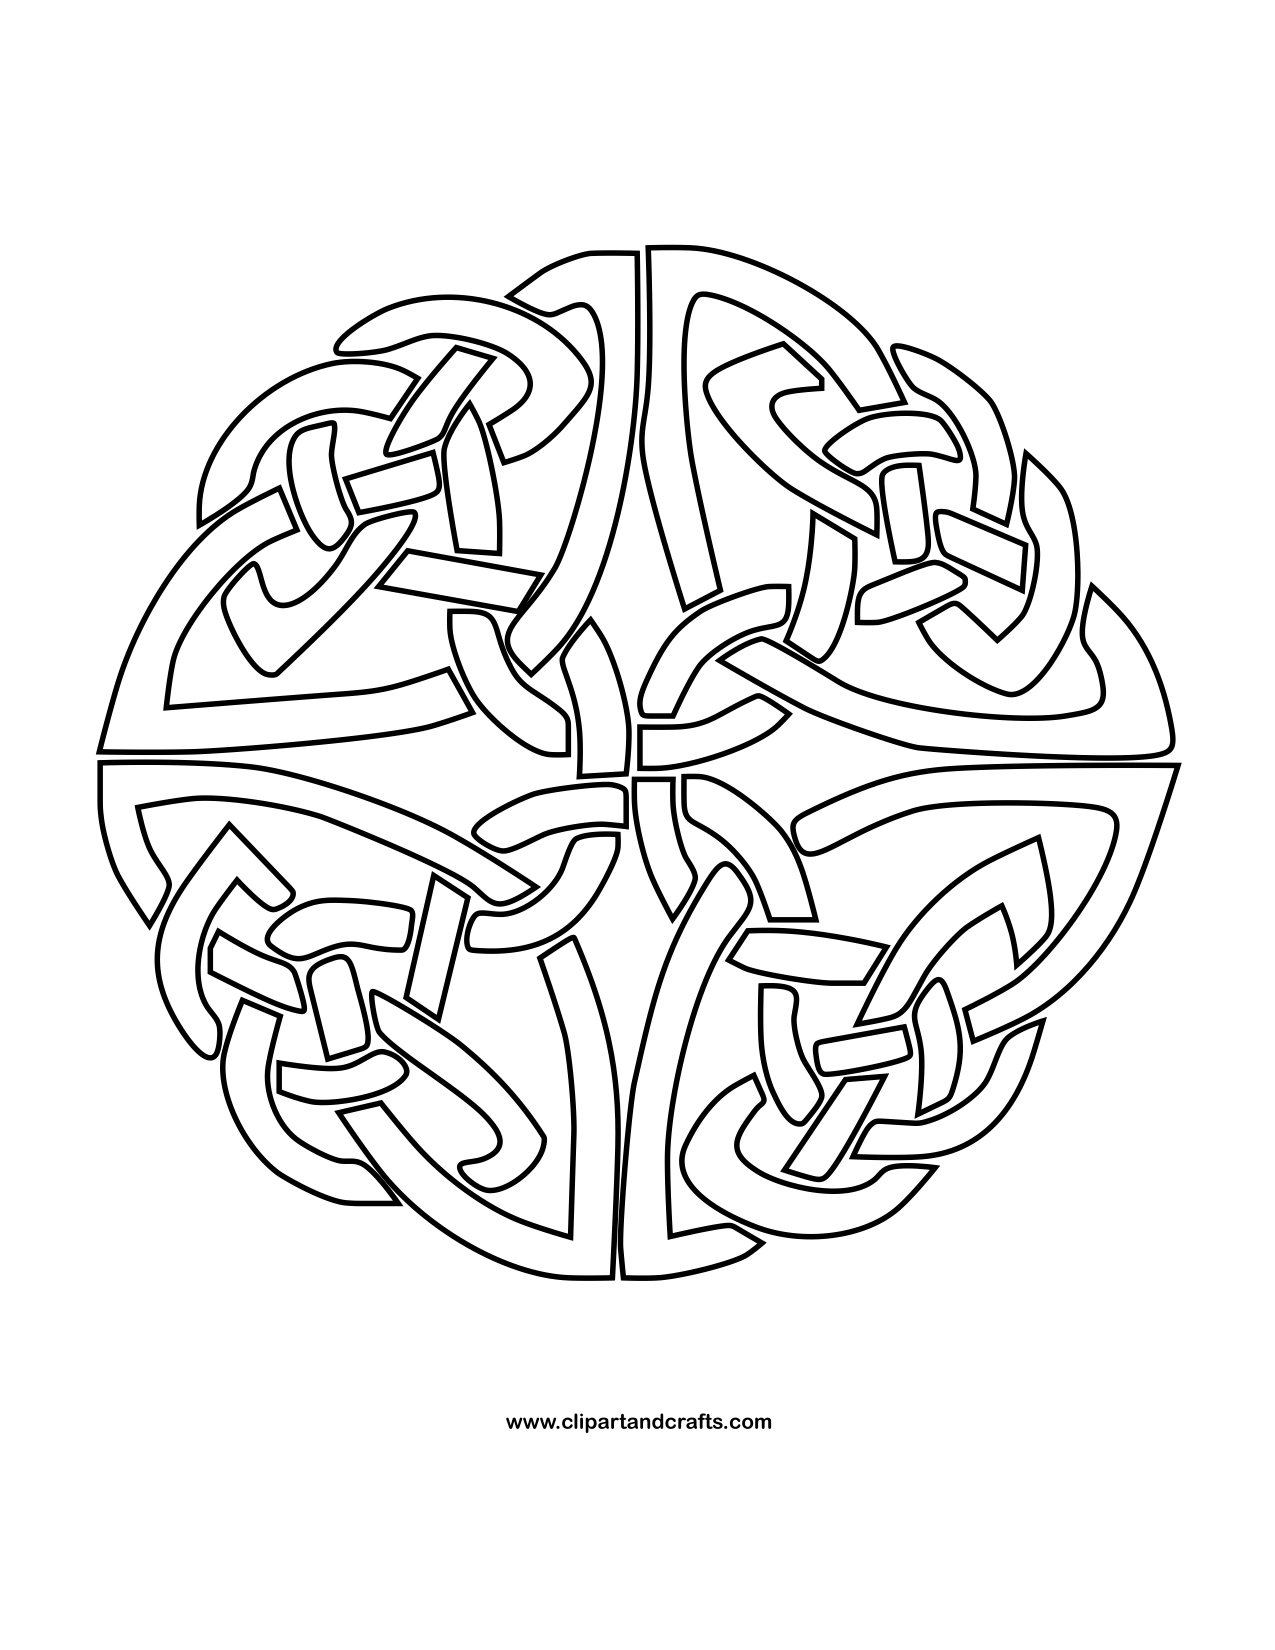 Mandala monday more free celtic mandalas to color for Celtic coloring pages printable